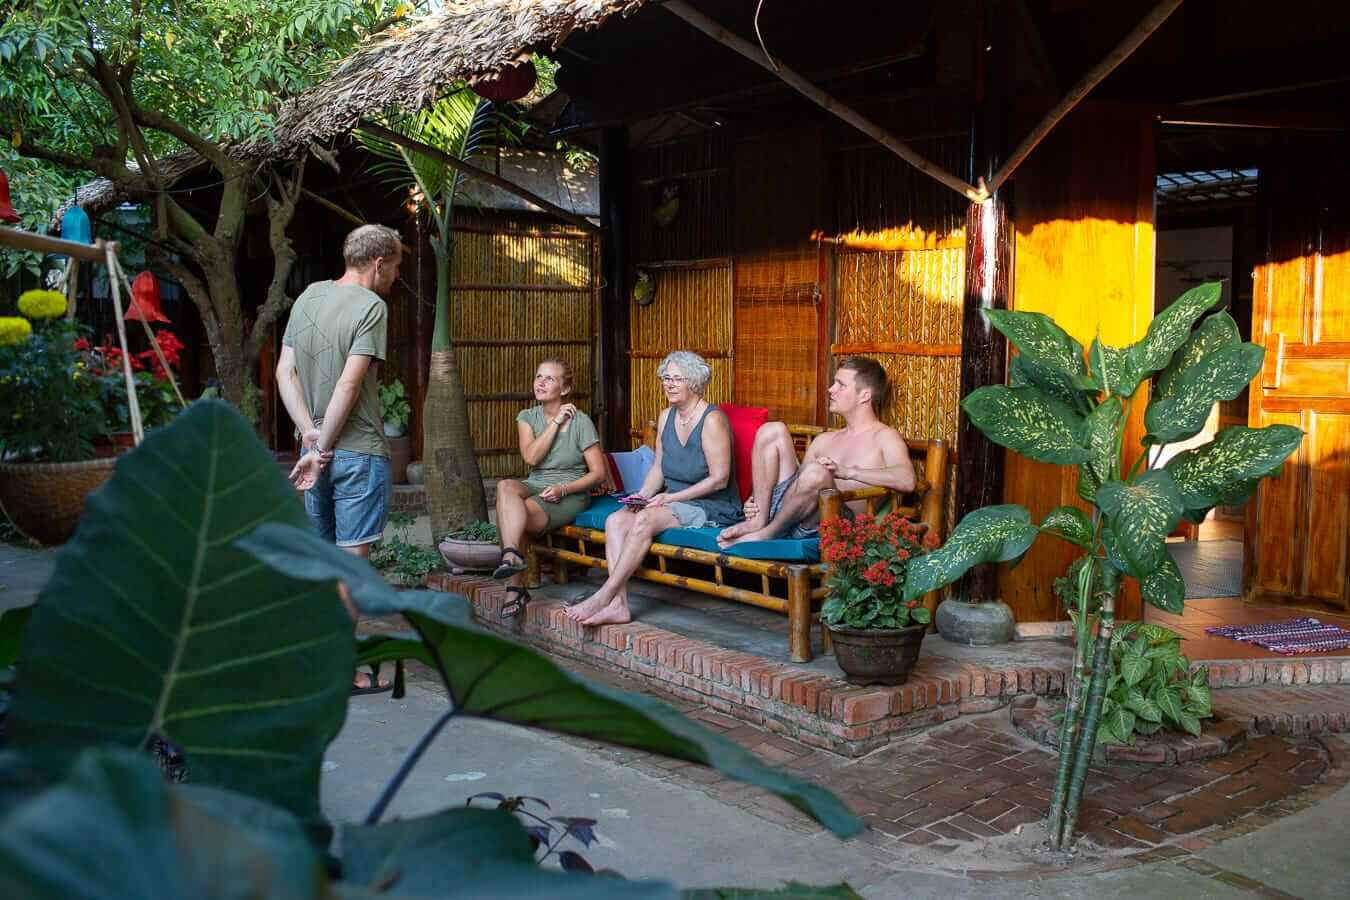 Under The Coconut Tree Hostel's guests